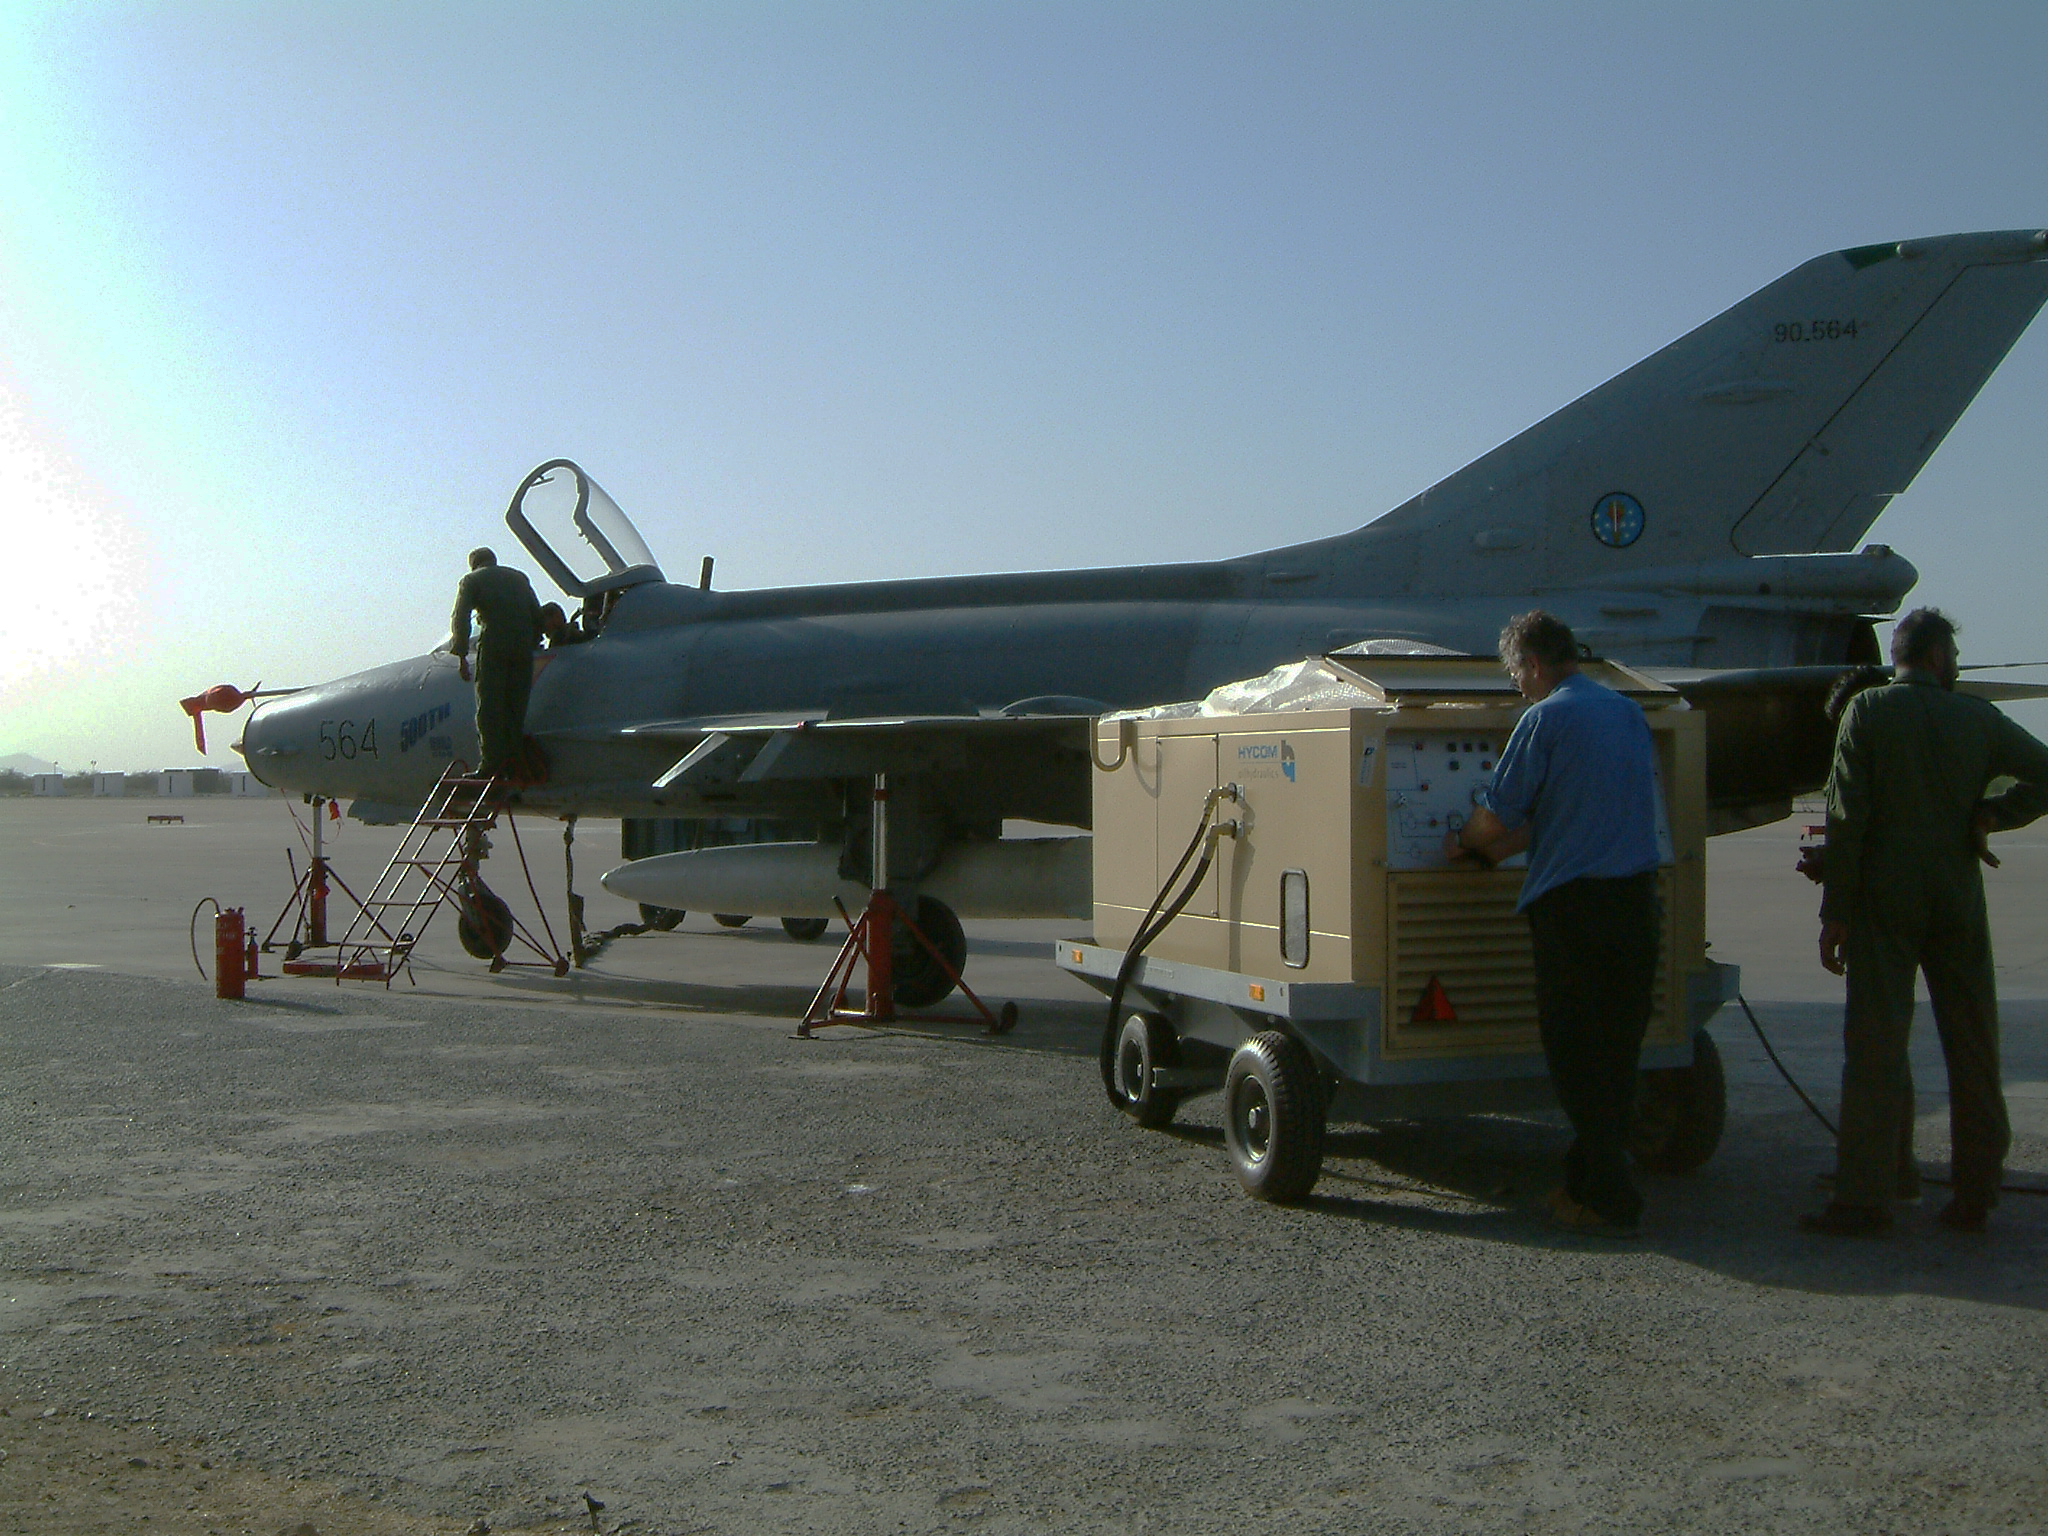 Fighter jet maintenance with Hycom HGPU